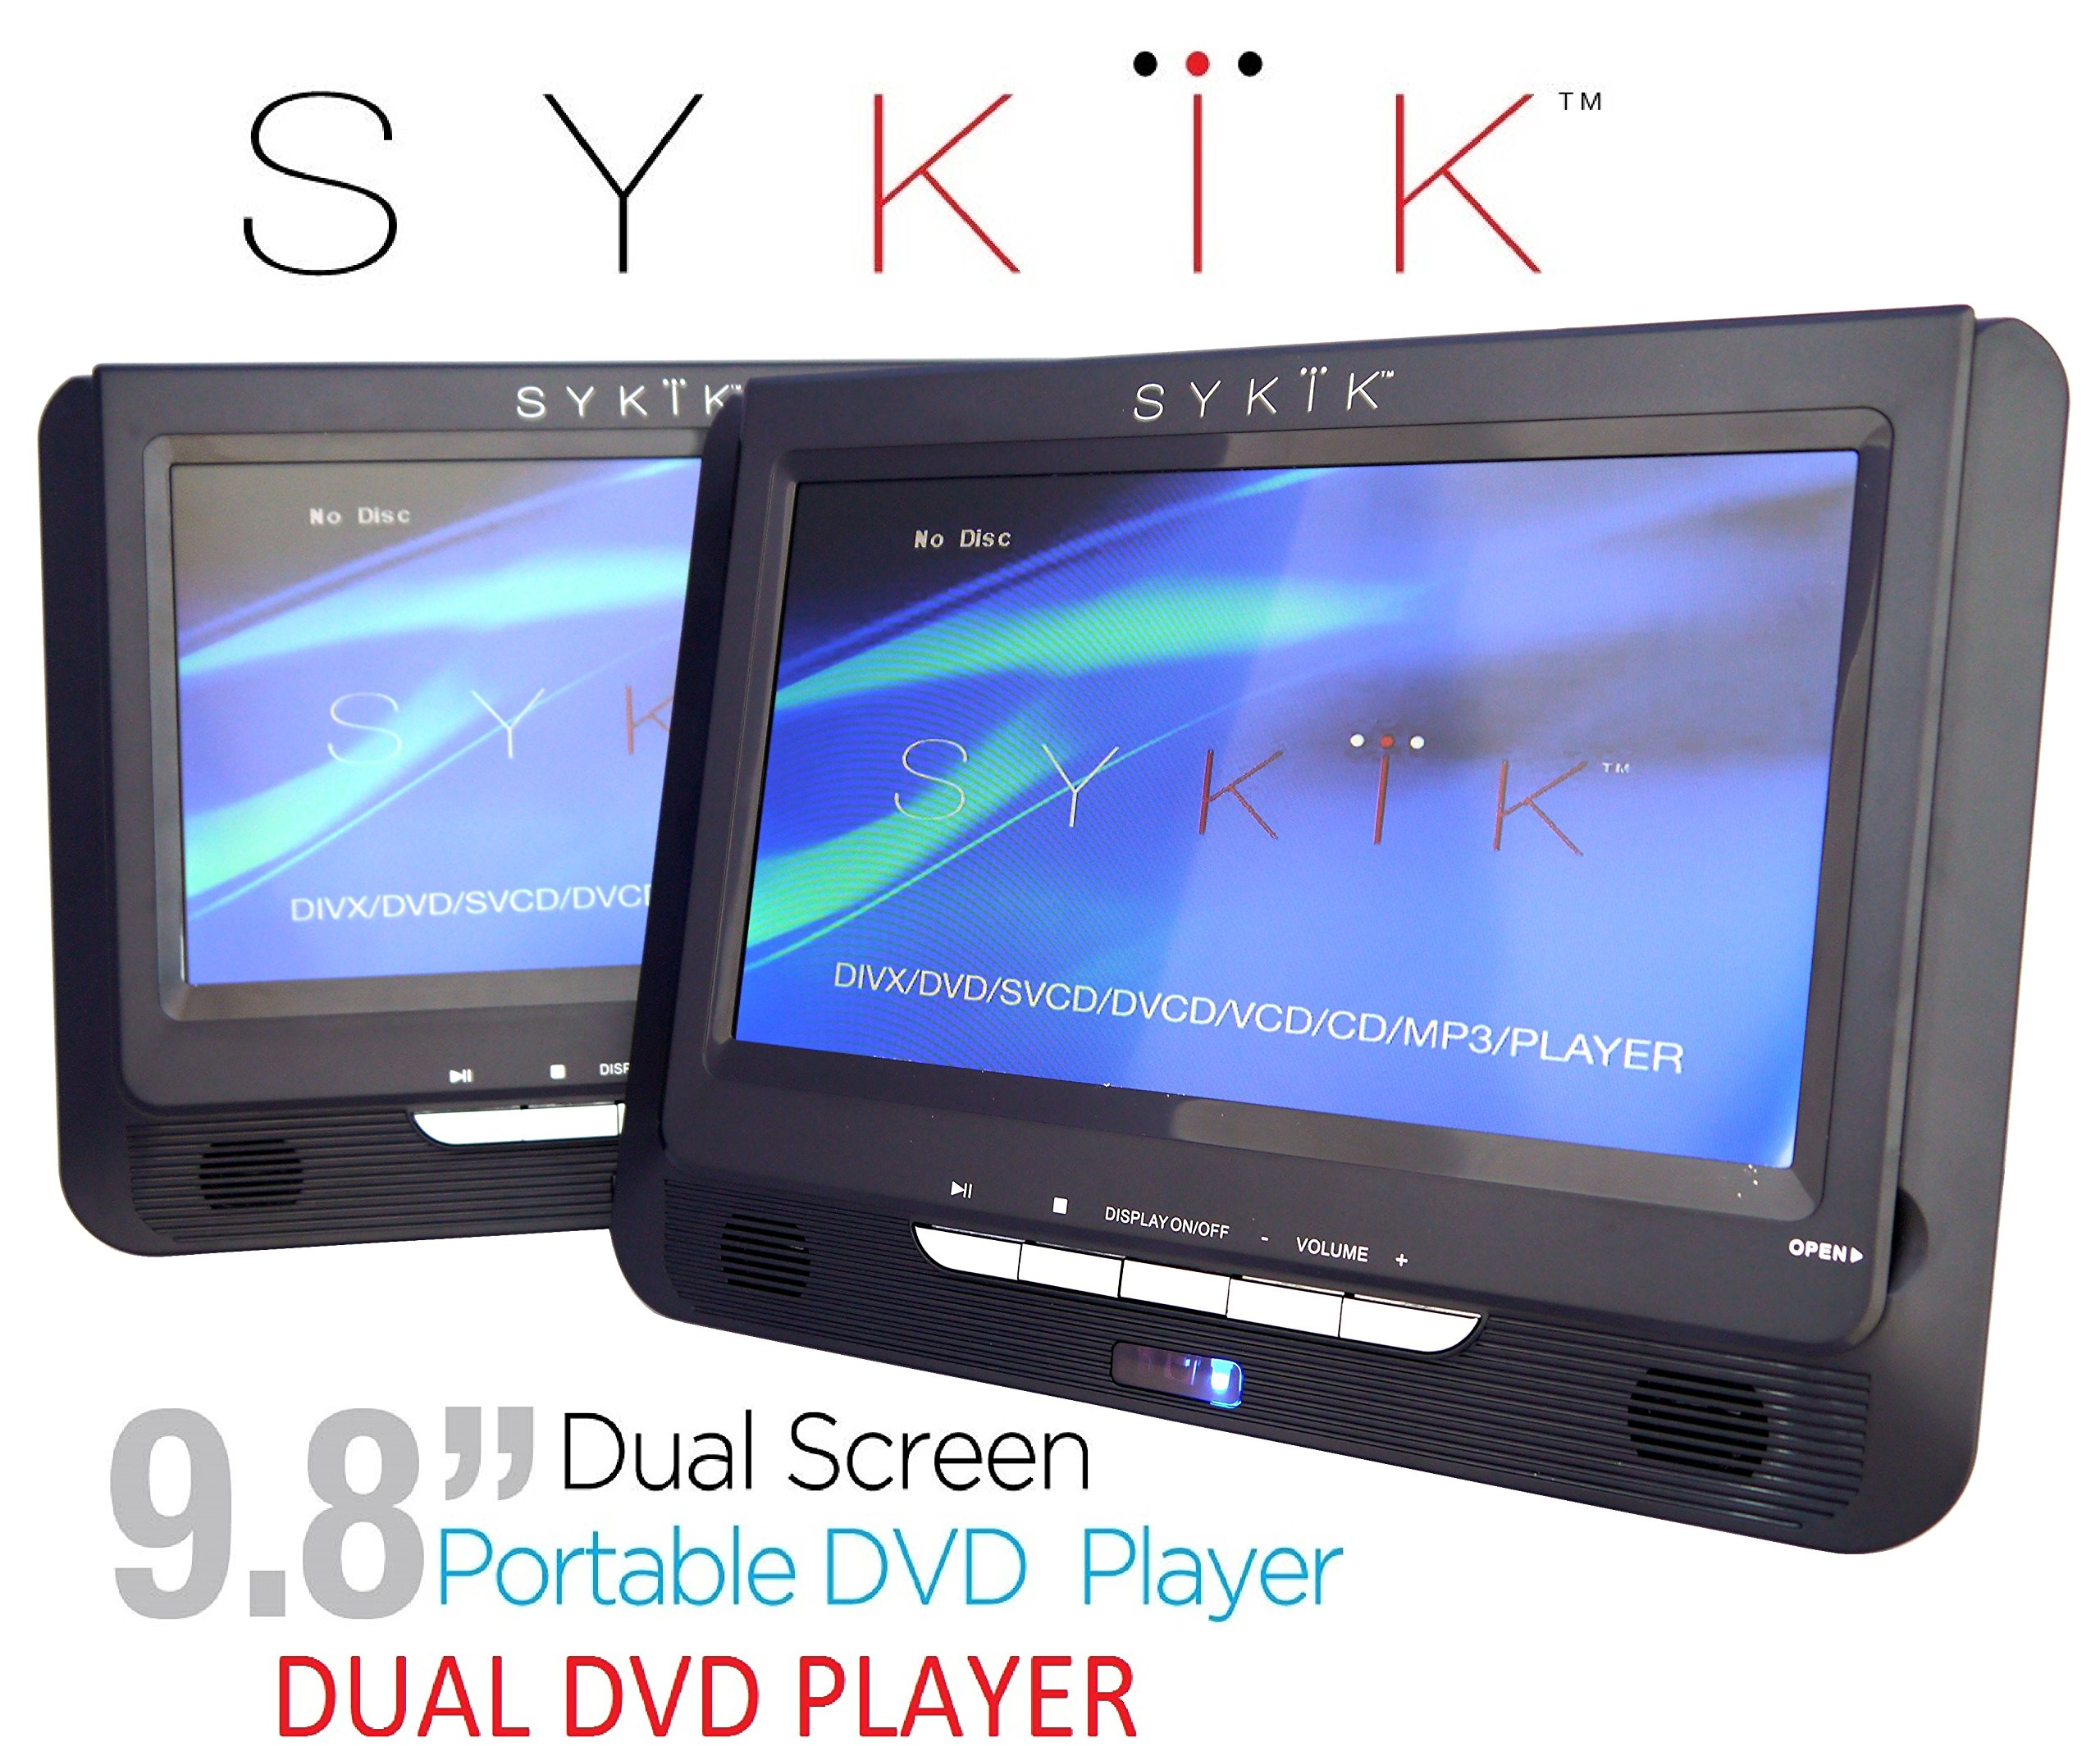 "Sykik 9.8"" Dual screen, dual DVD player. Both W/ built-in rechargeable battery. Play single or different DVDs. For use in car , home or on the go. Region free for worldwide use. by Sykik"